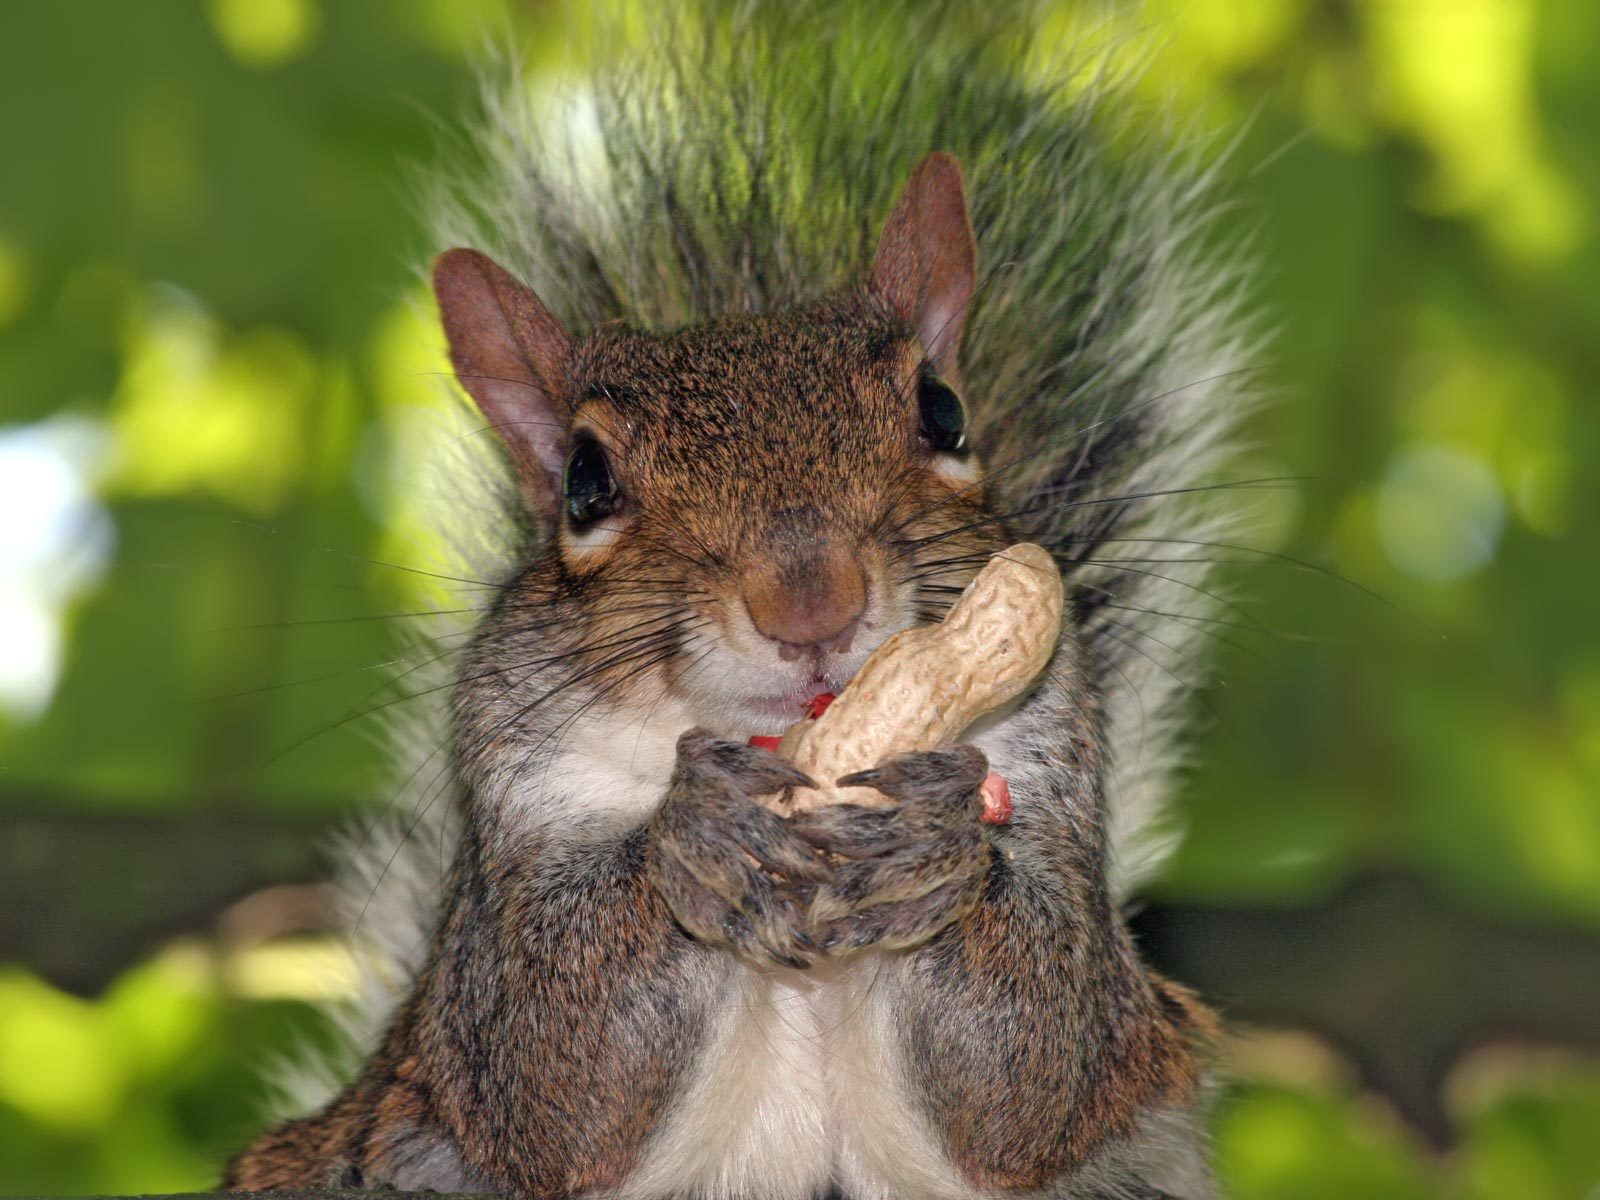 Animals funny squirrels animal HD Wallpaper